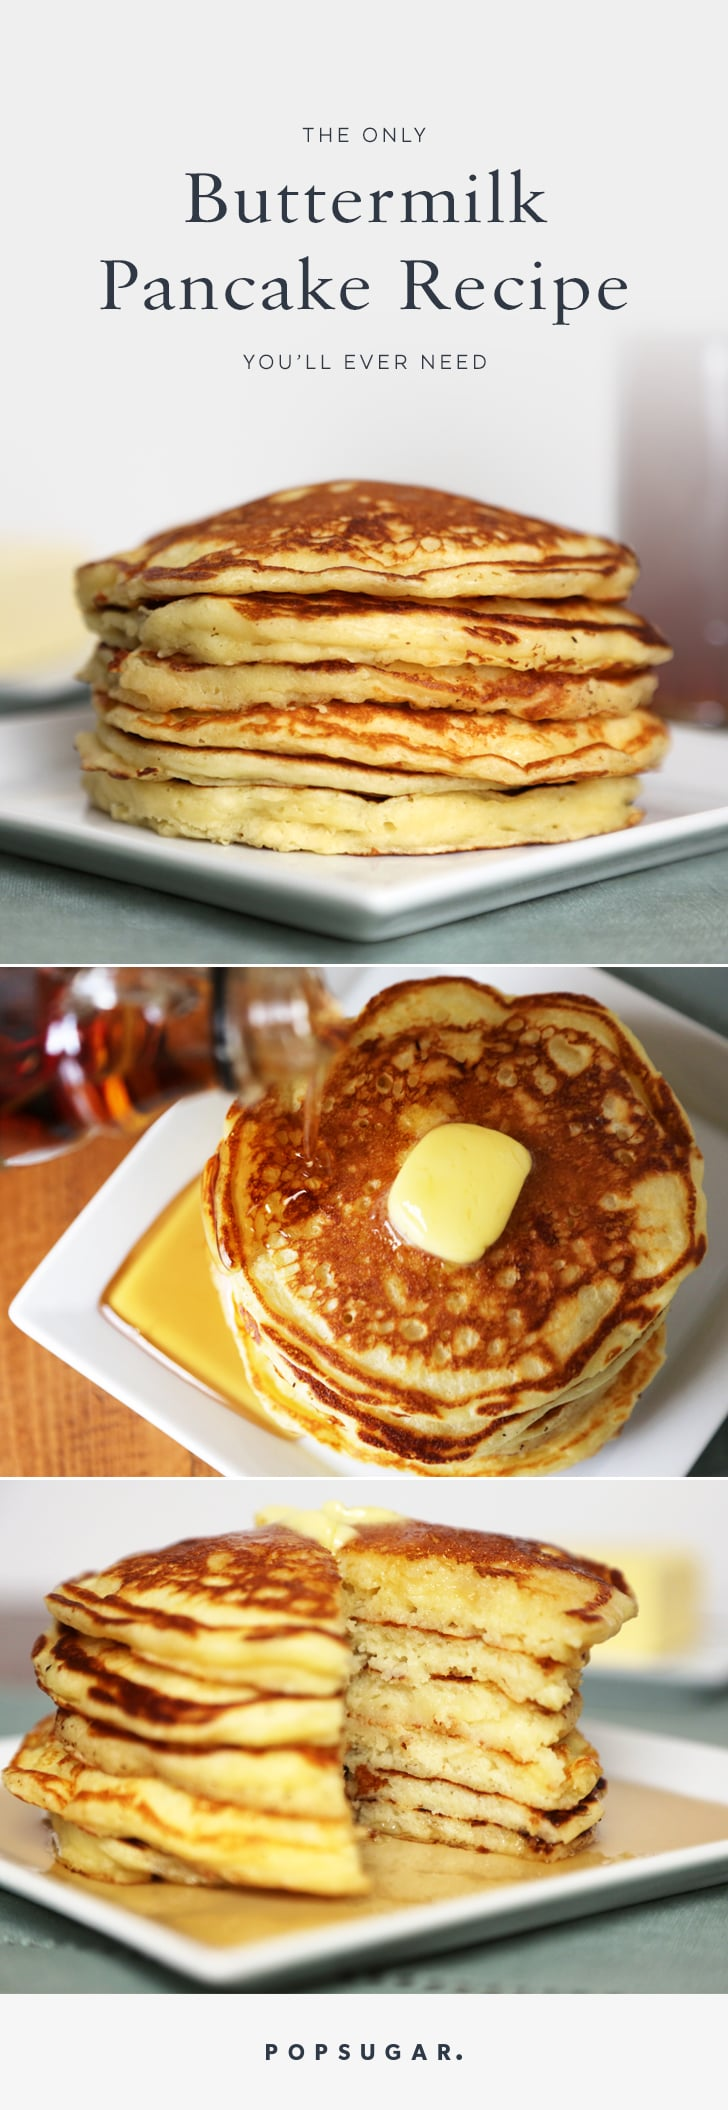 Buttermilk pancake recipe popsugar food share this link copy while many resort to pancake mix when making ccuart Choice Image